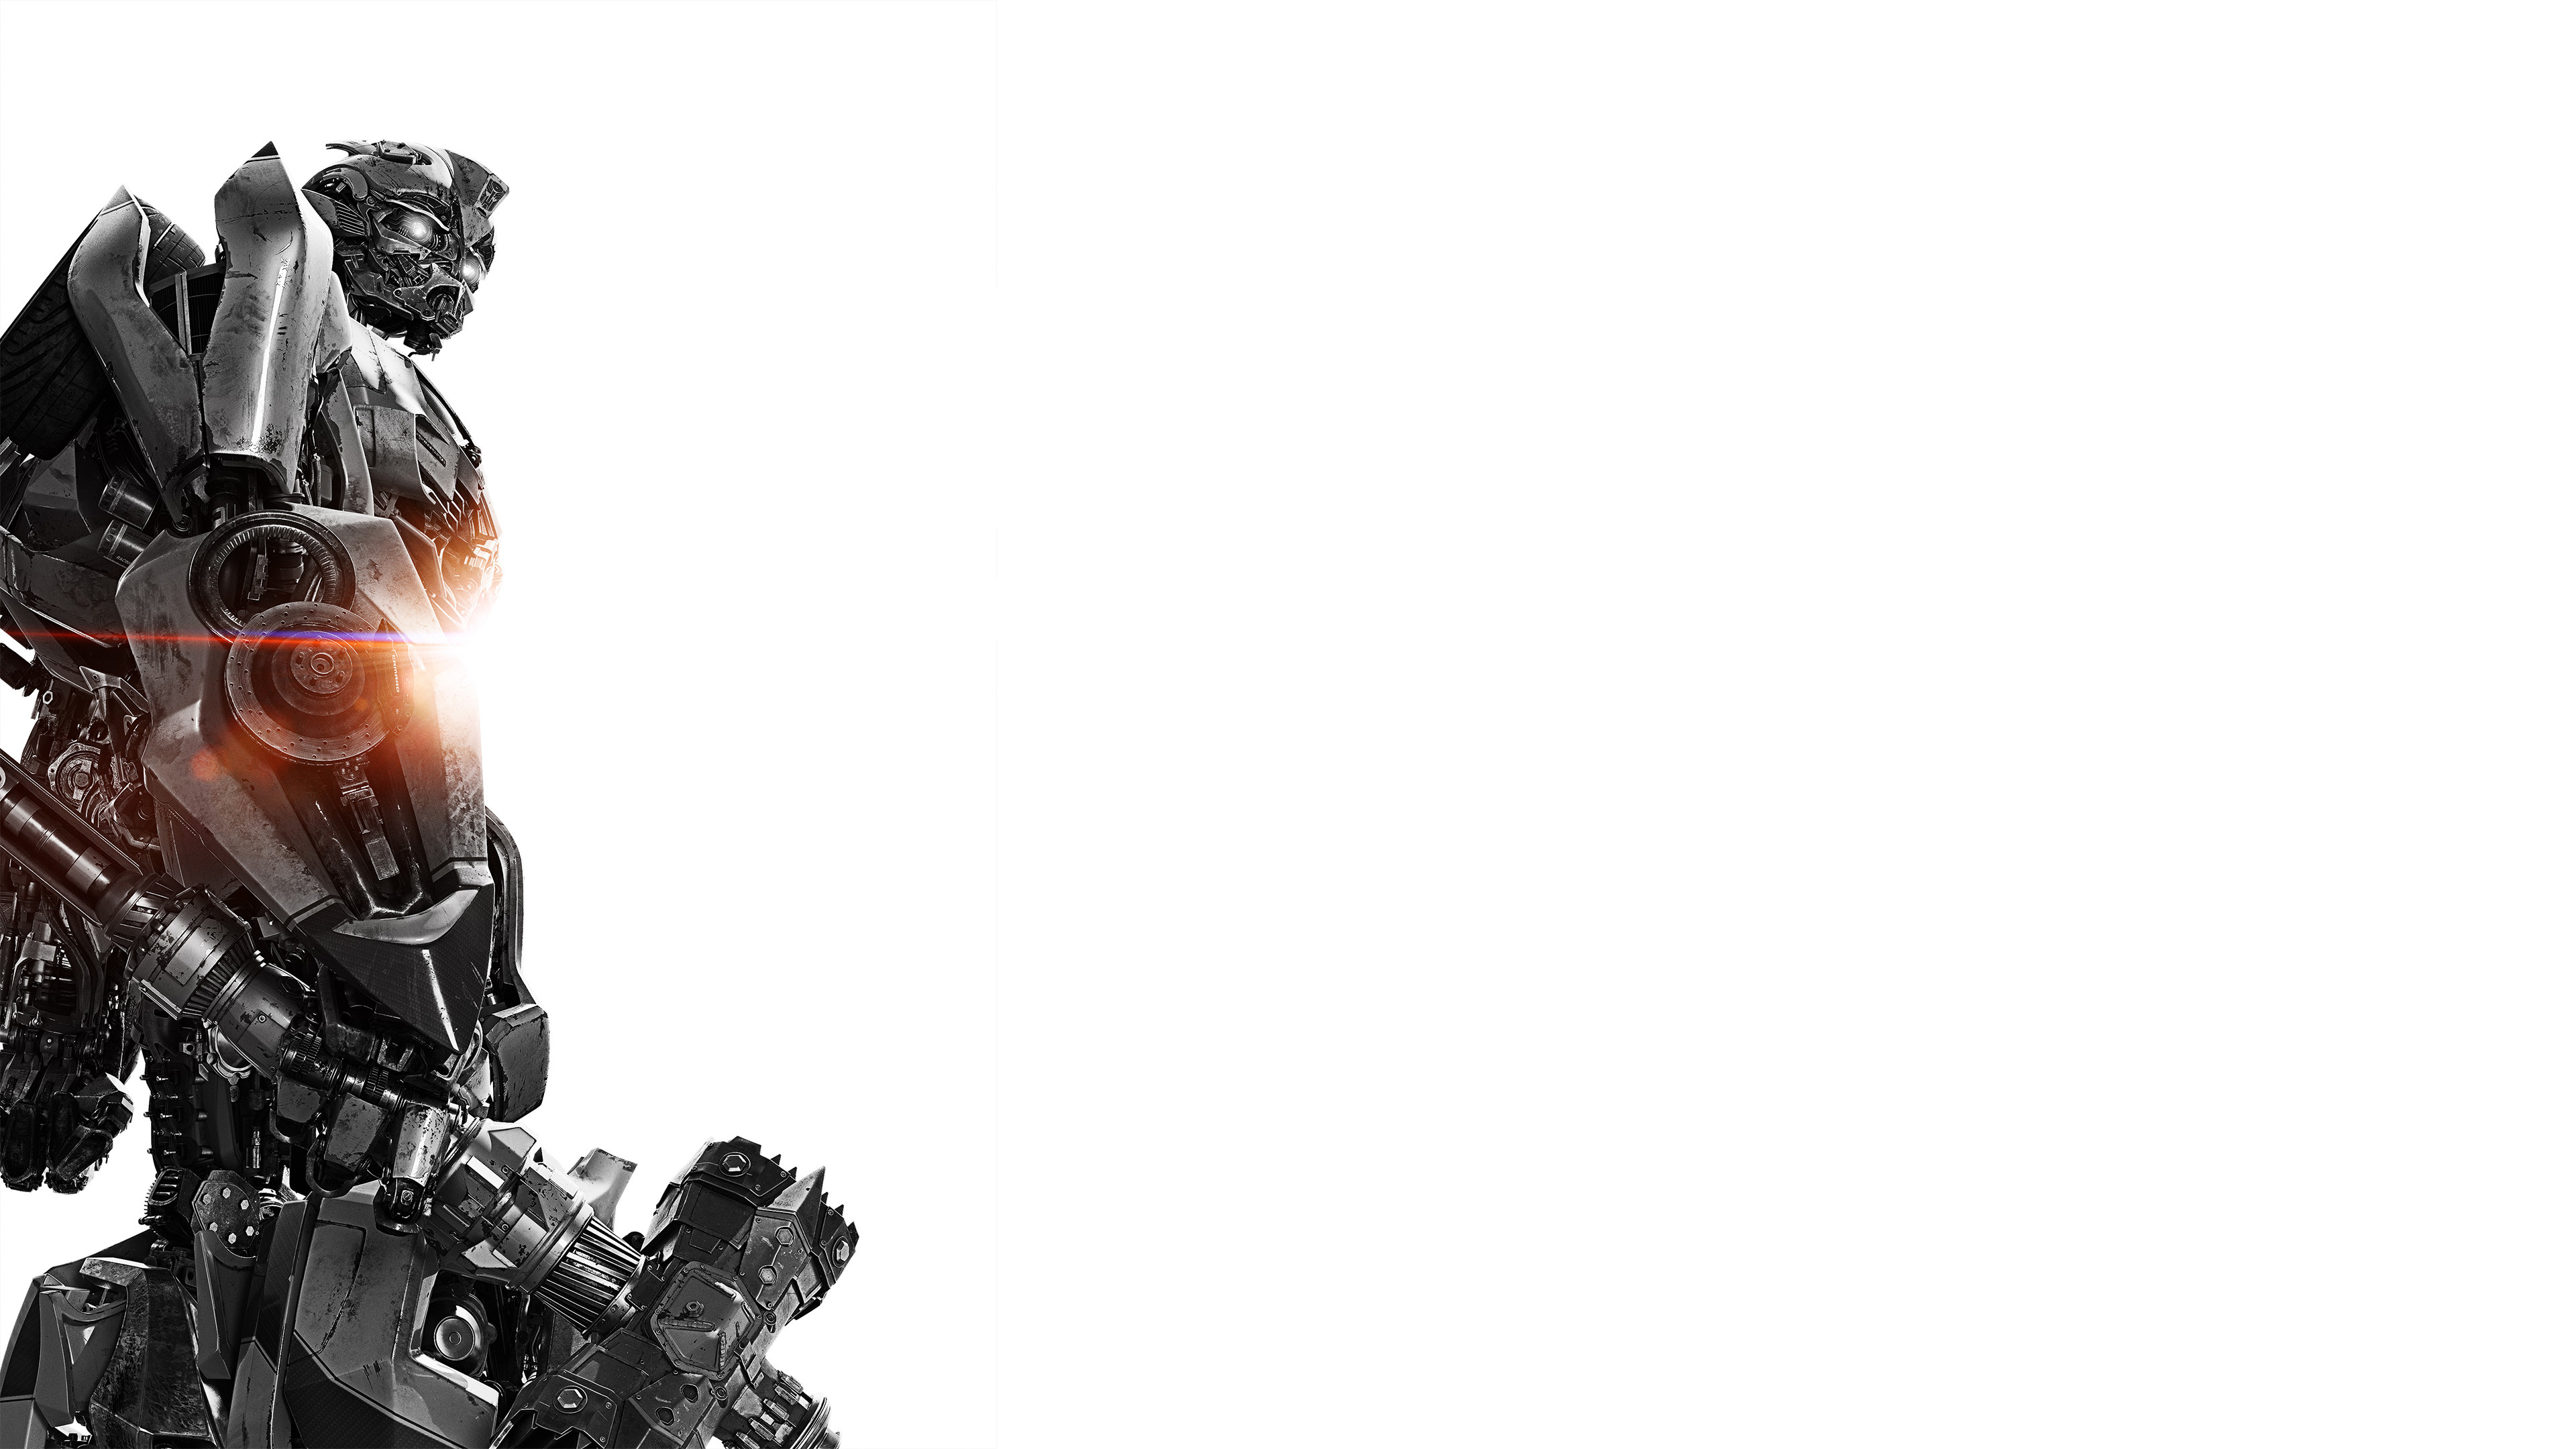 Res: 3840x2160, Transformers The Last Knight Bumblebee